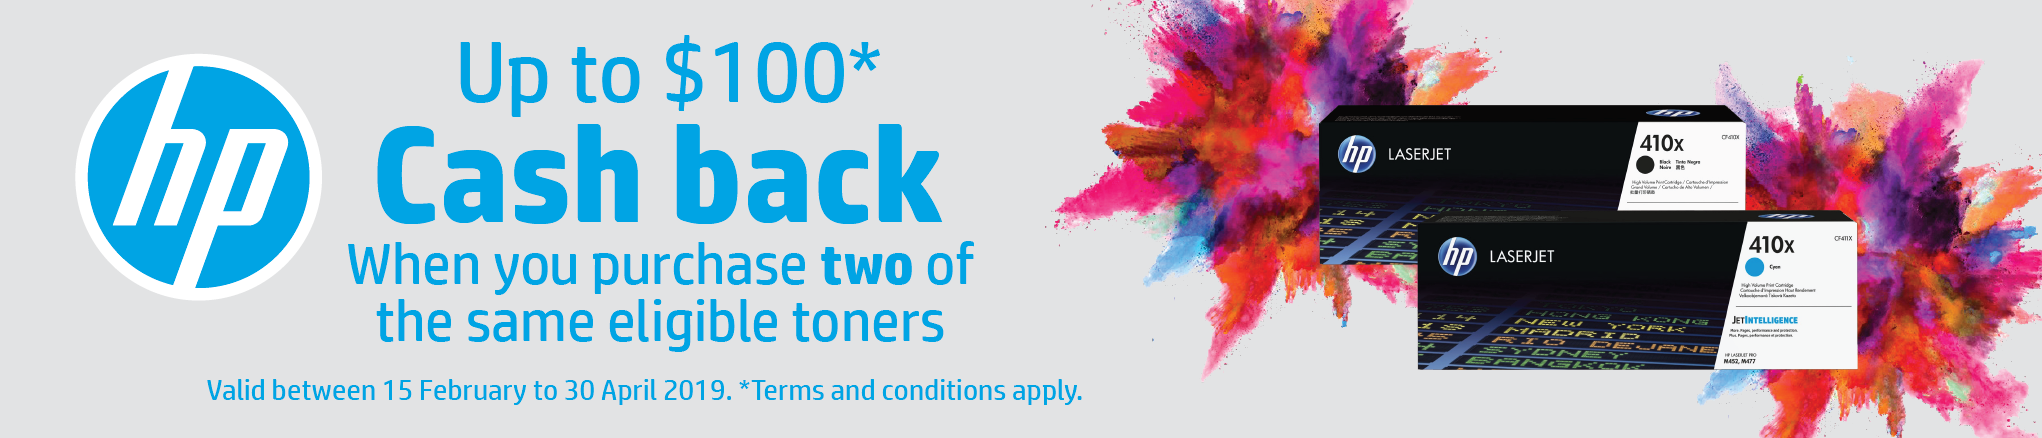 Up to $100 Cash Back HP Toner Promotion